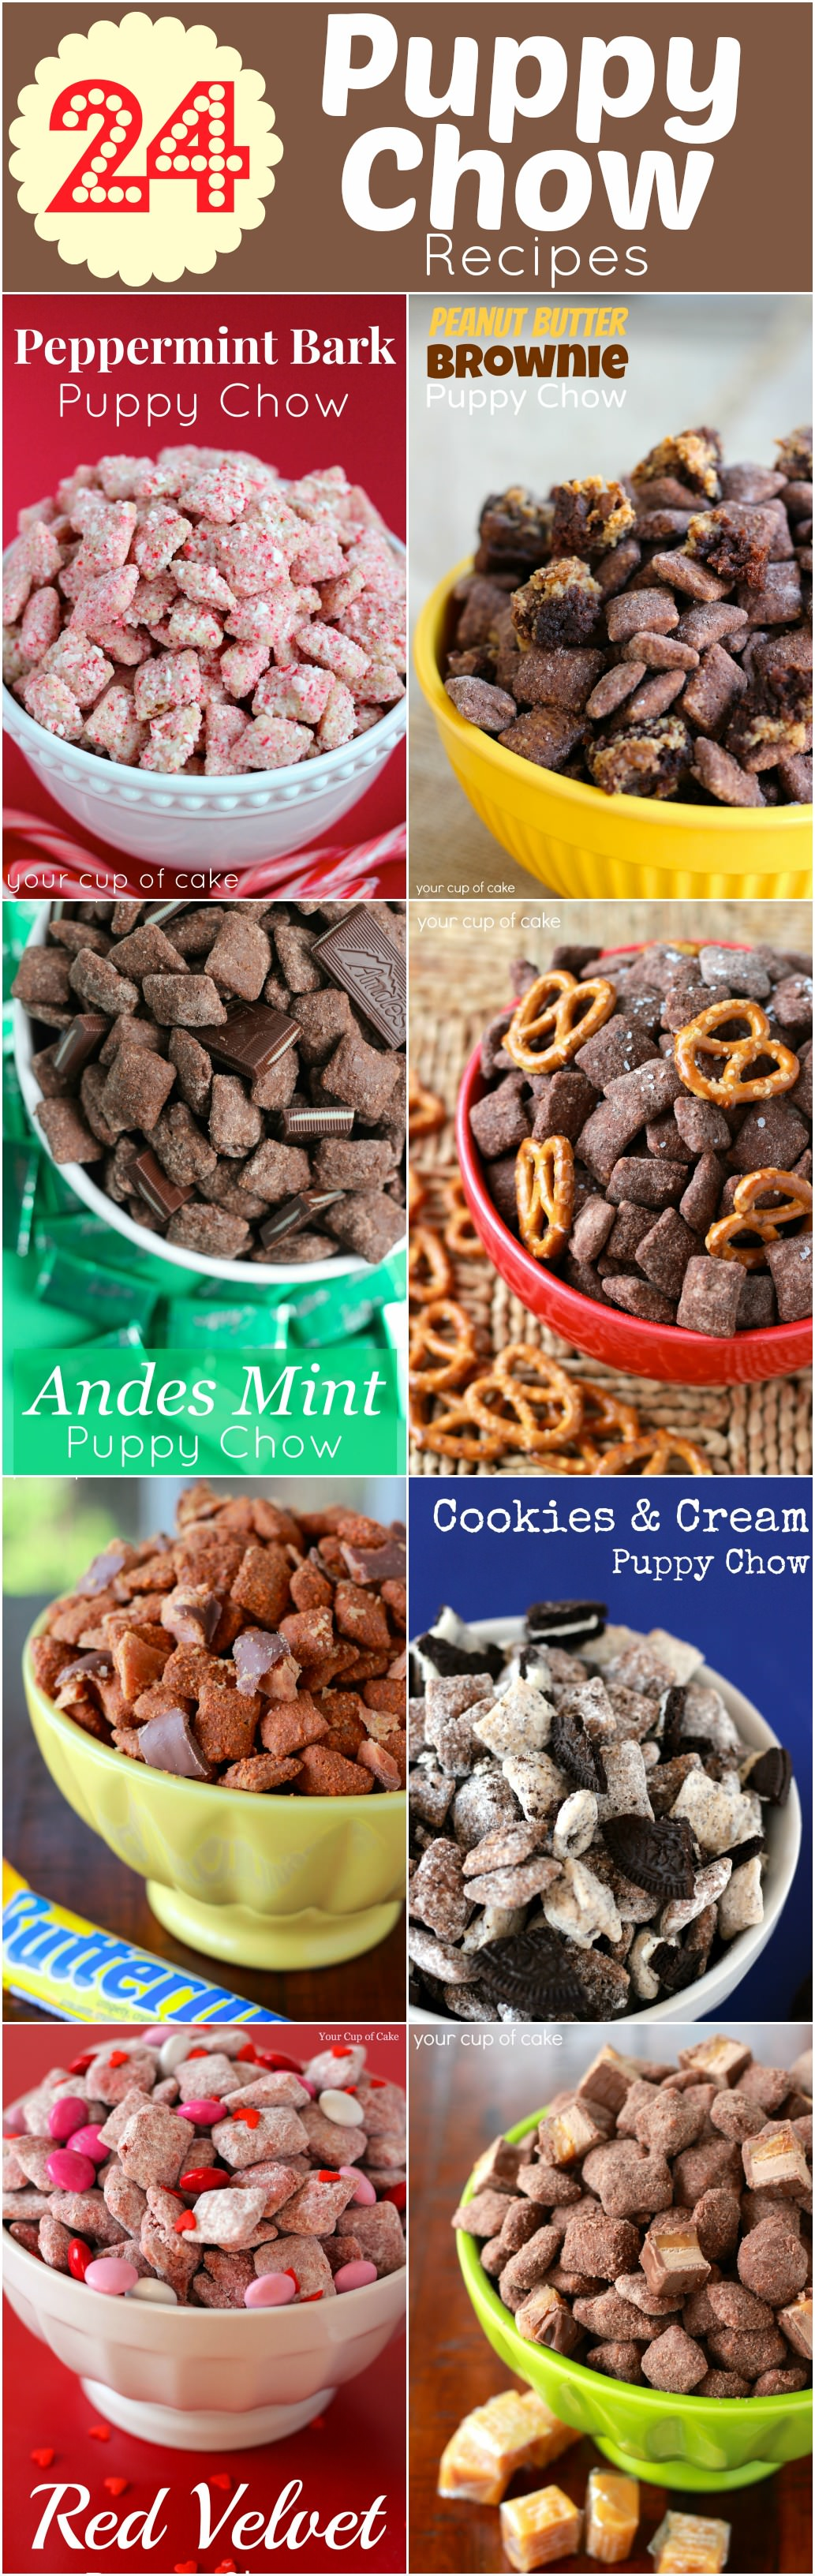 24 Puppy Chow Recipes Your Cup Of Cake